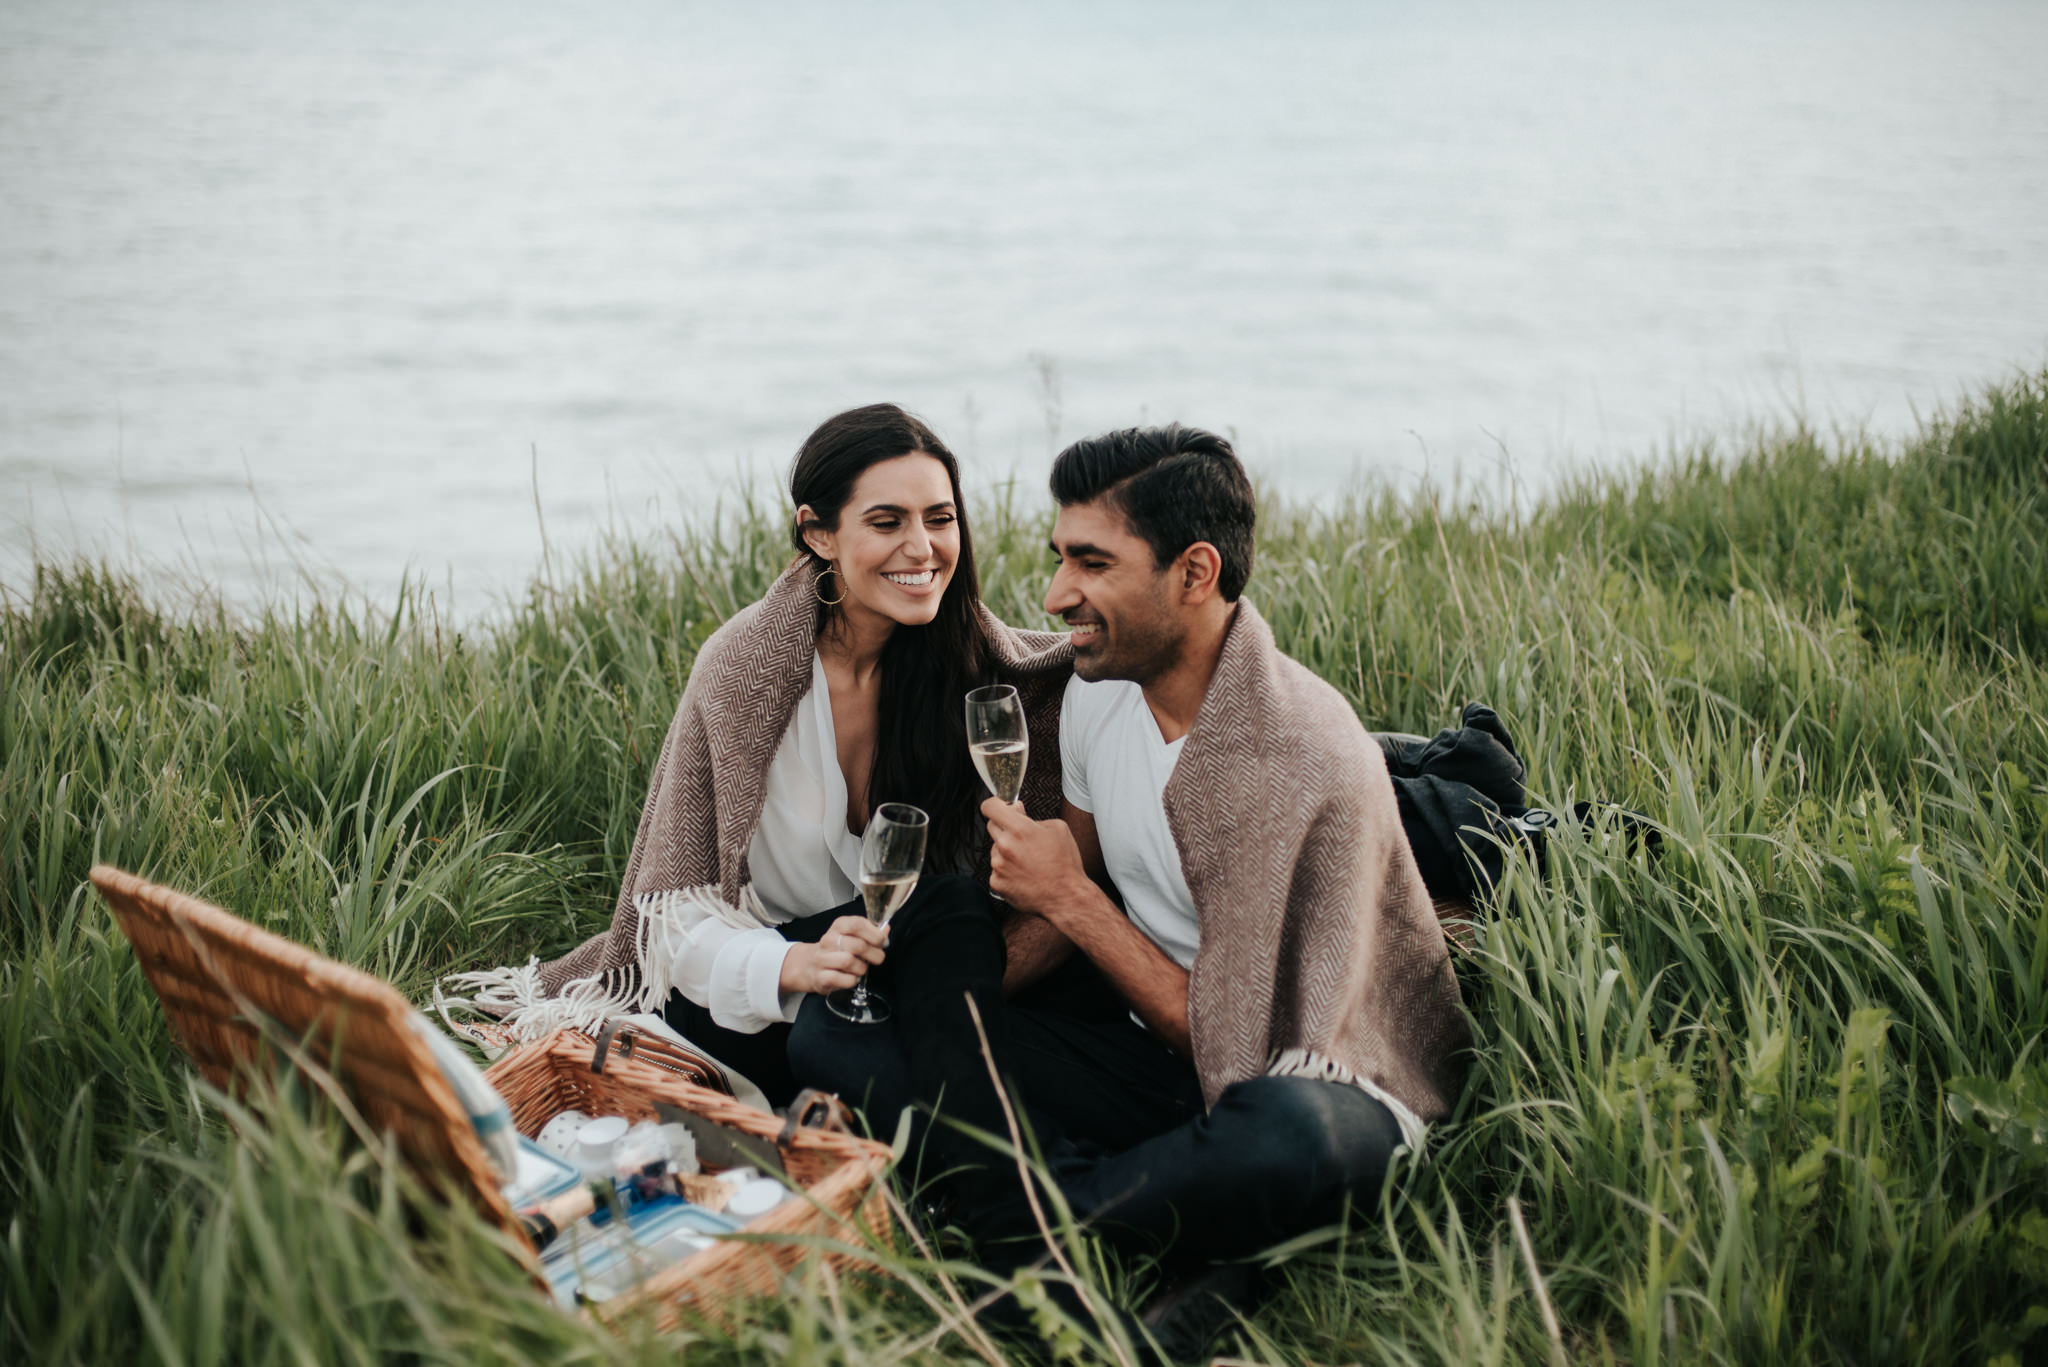 Young couple laughing and smiling in field with picnic setup for engagement